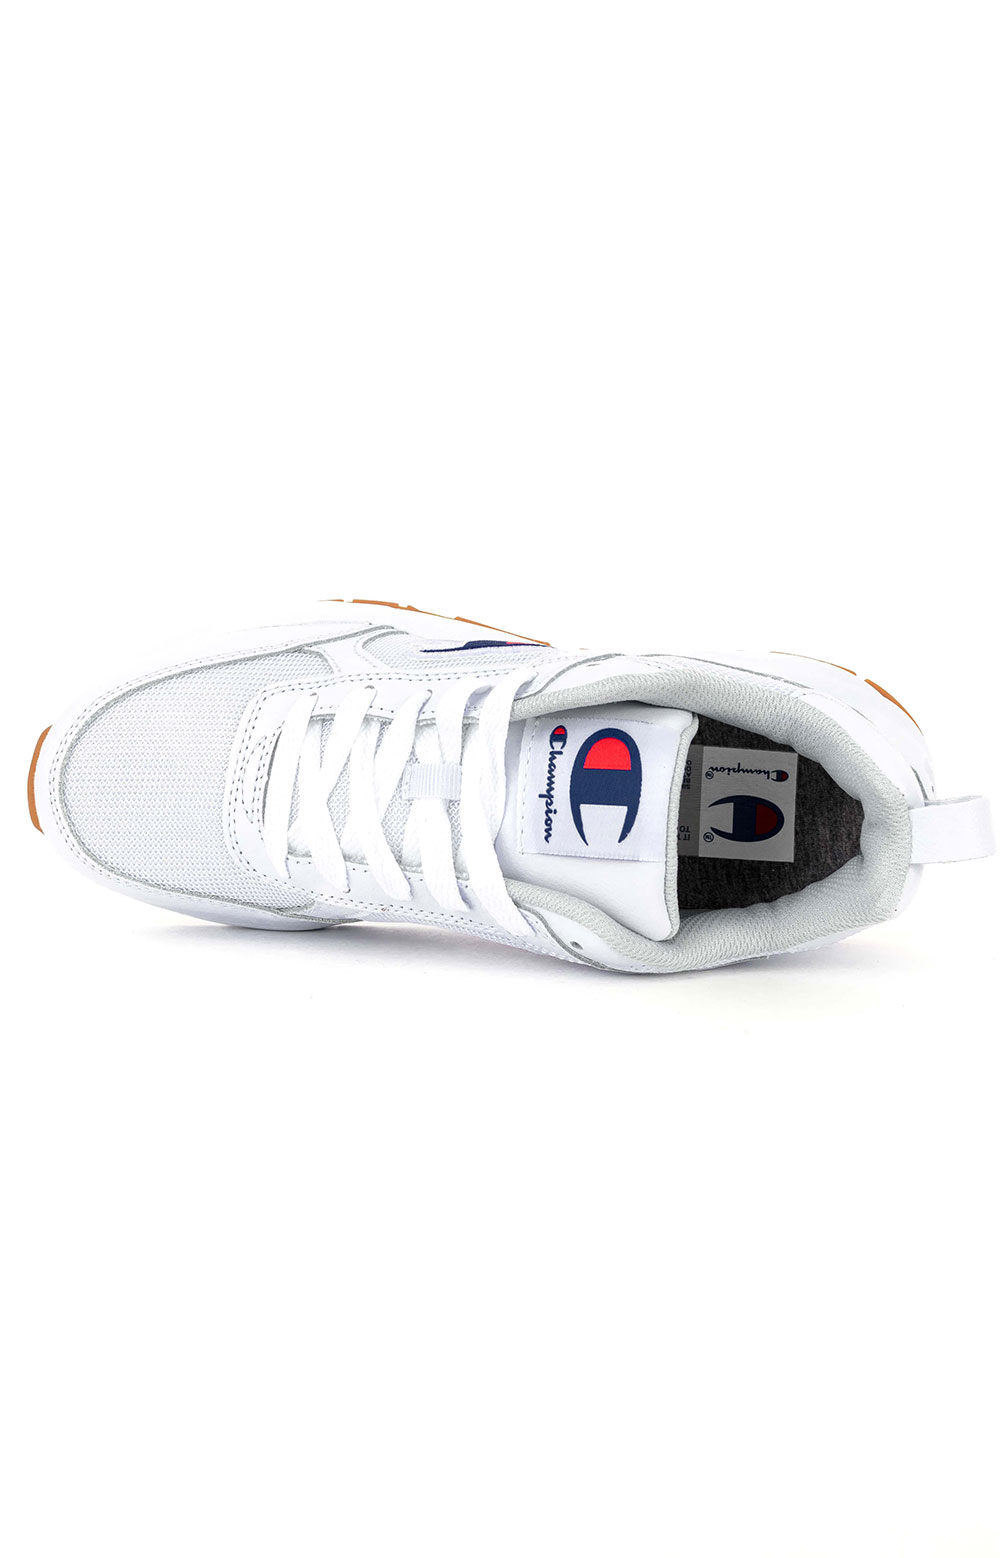 93 Eighteen Shoes - Classic White 2